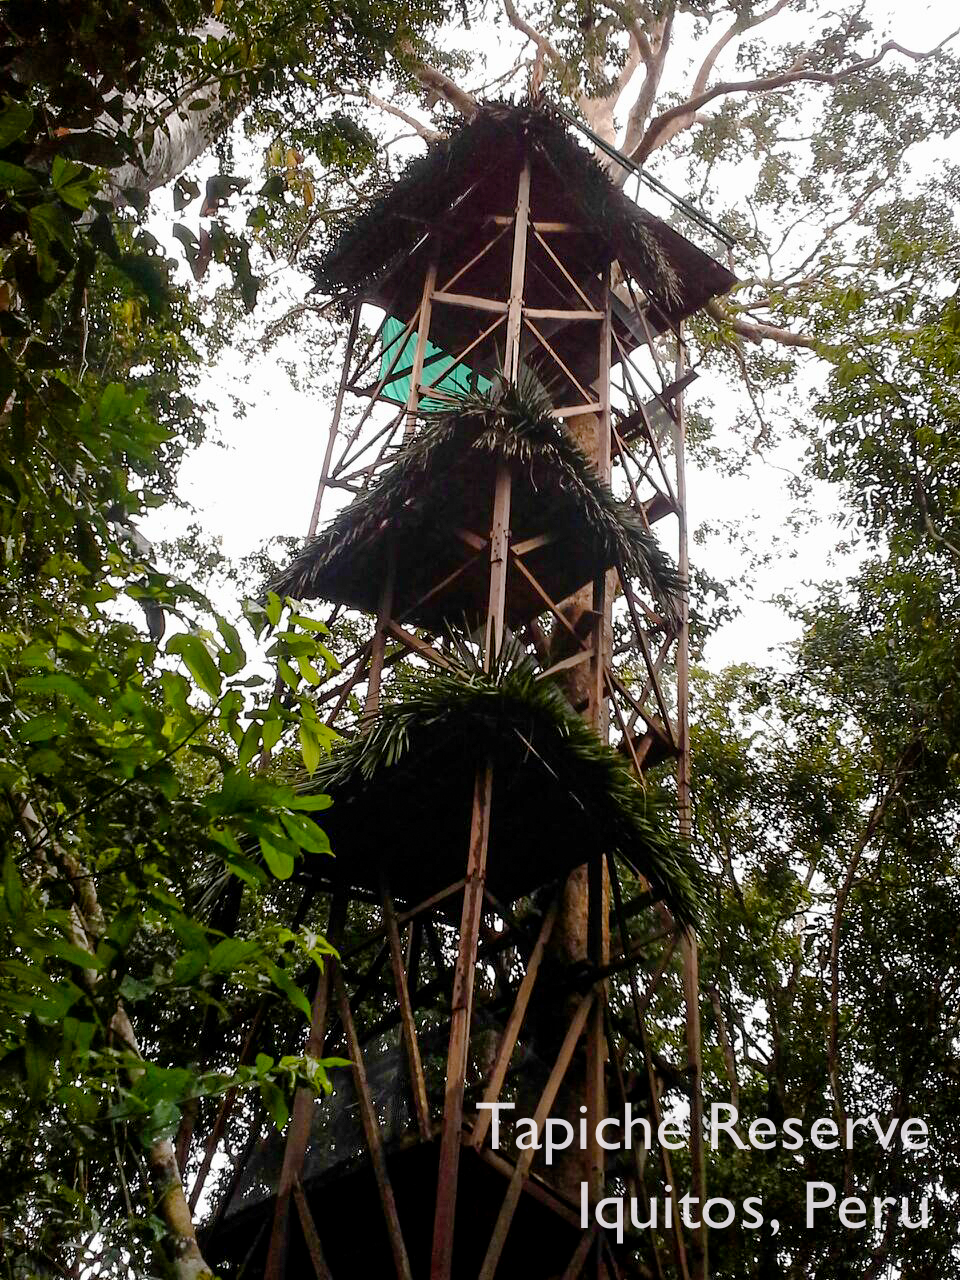 See the rainforest from 32m high! Tapiche Reserve Jungle, Peru